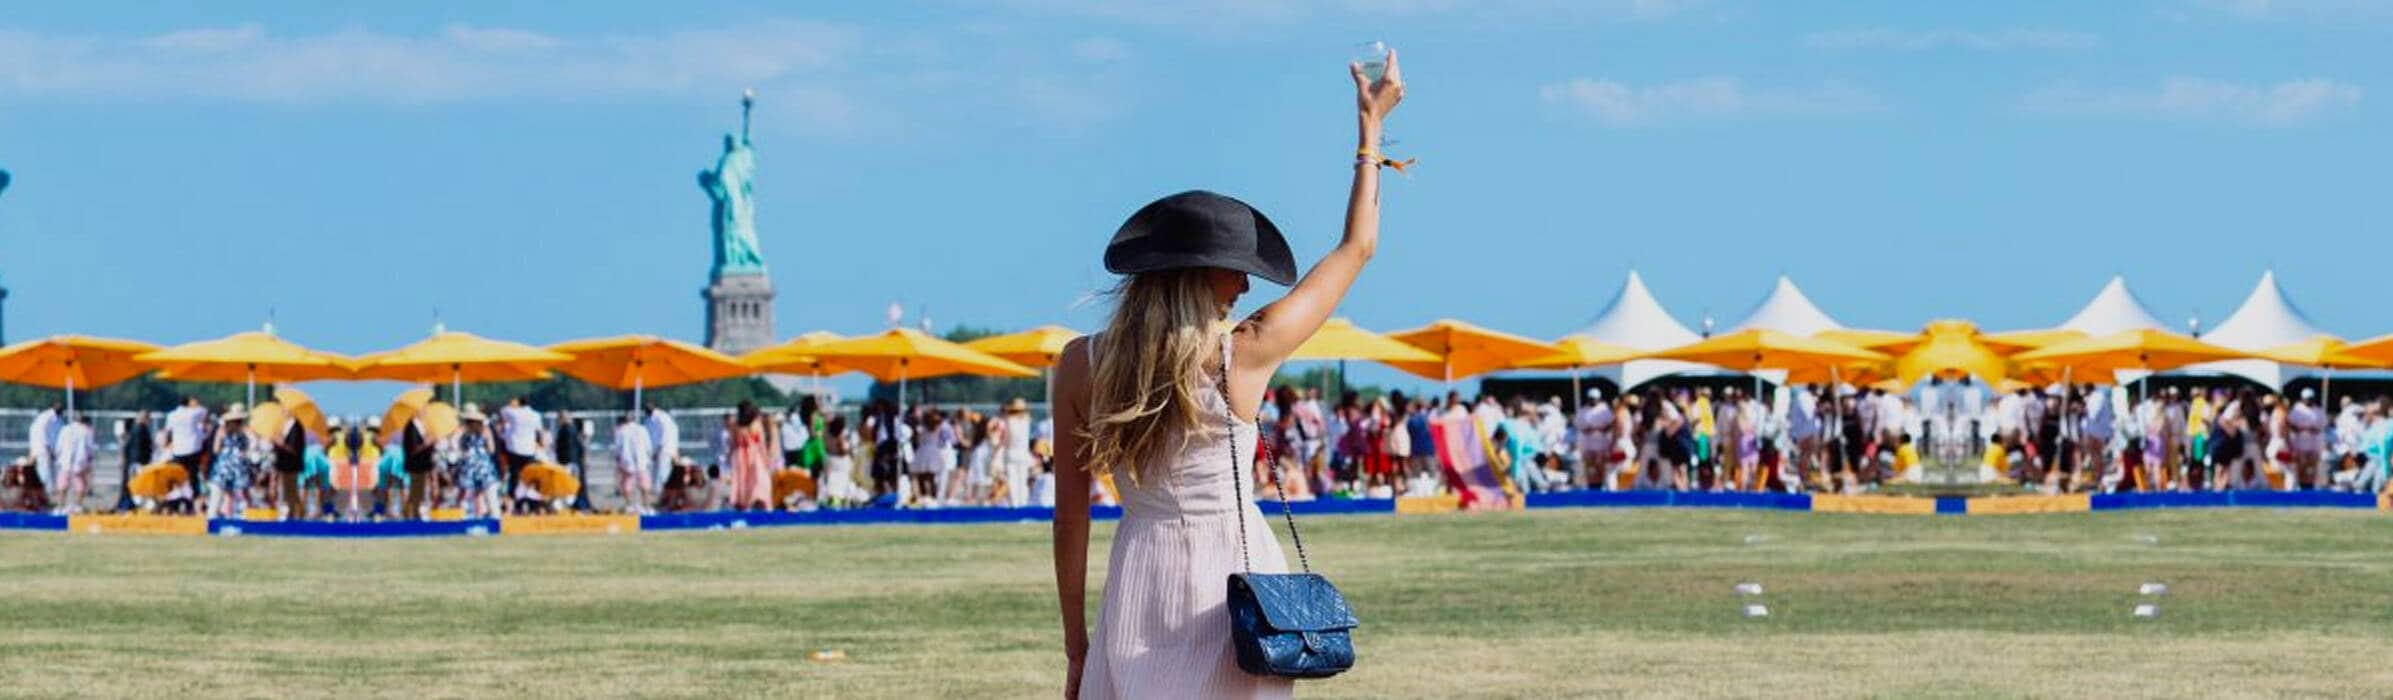 Veuve Clicquot - Clicquot World